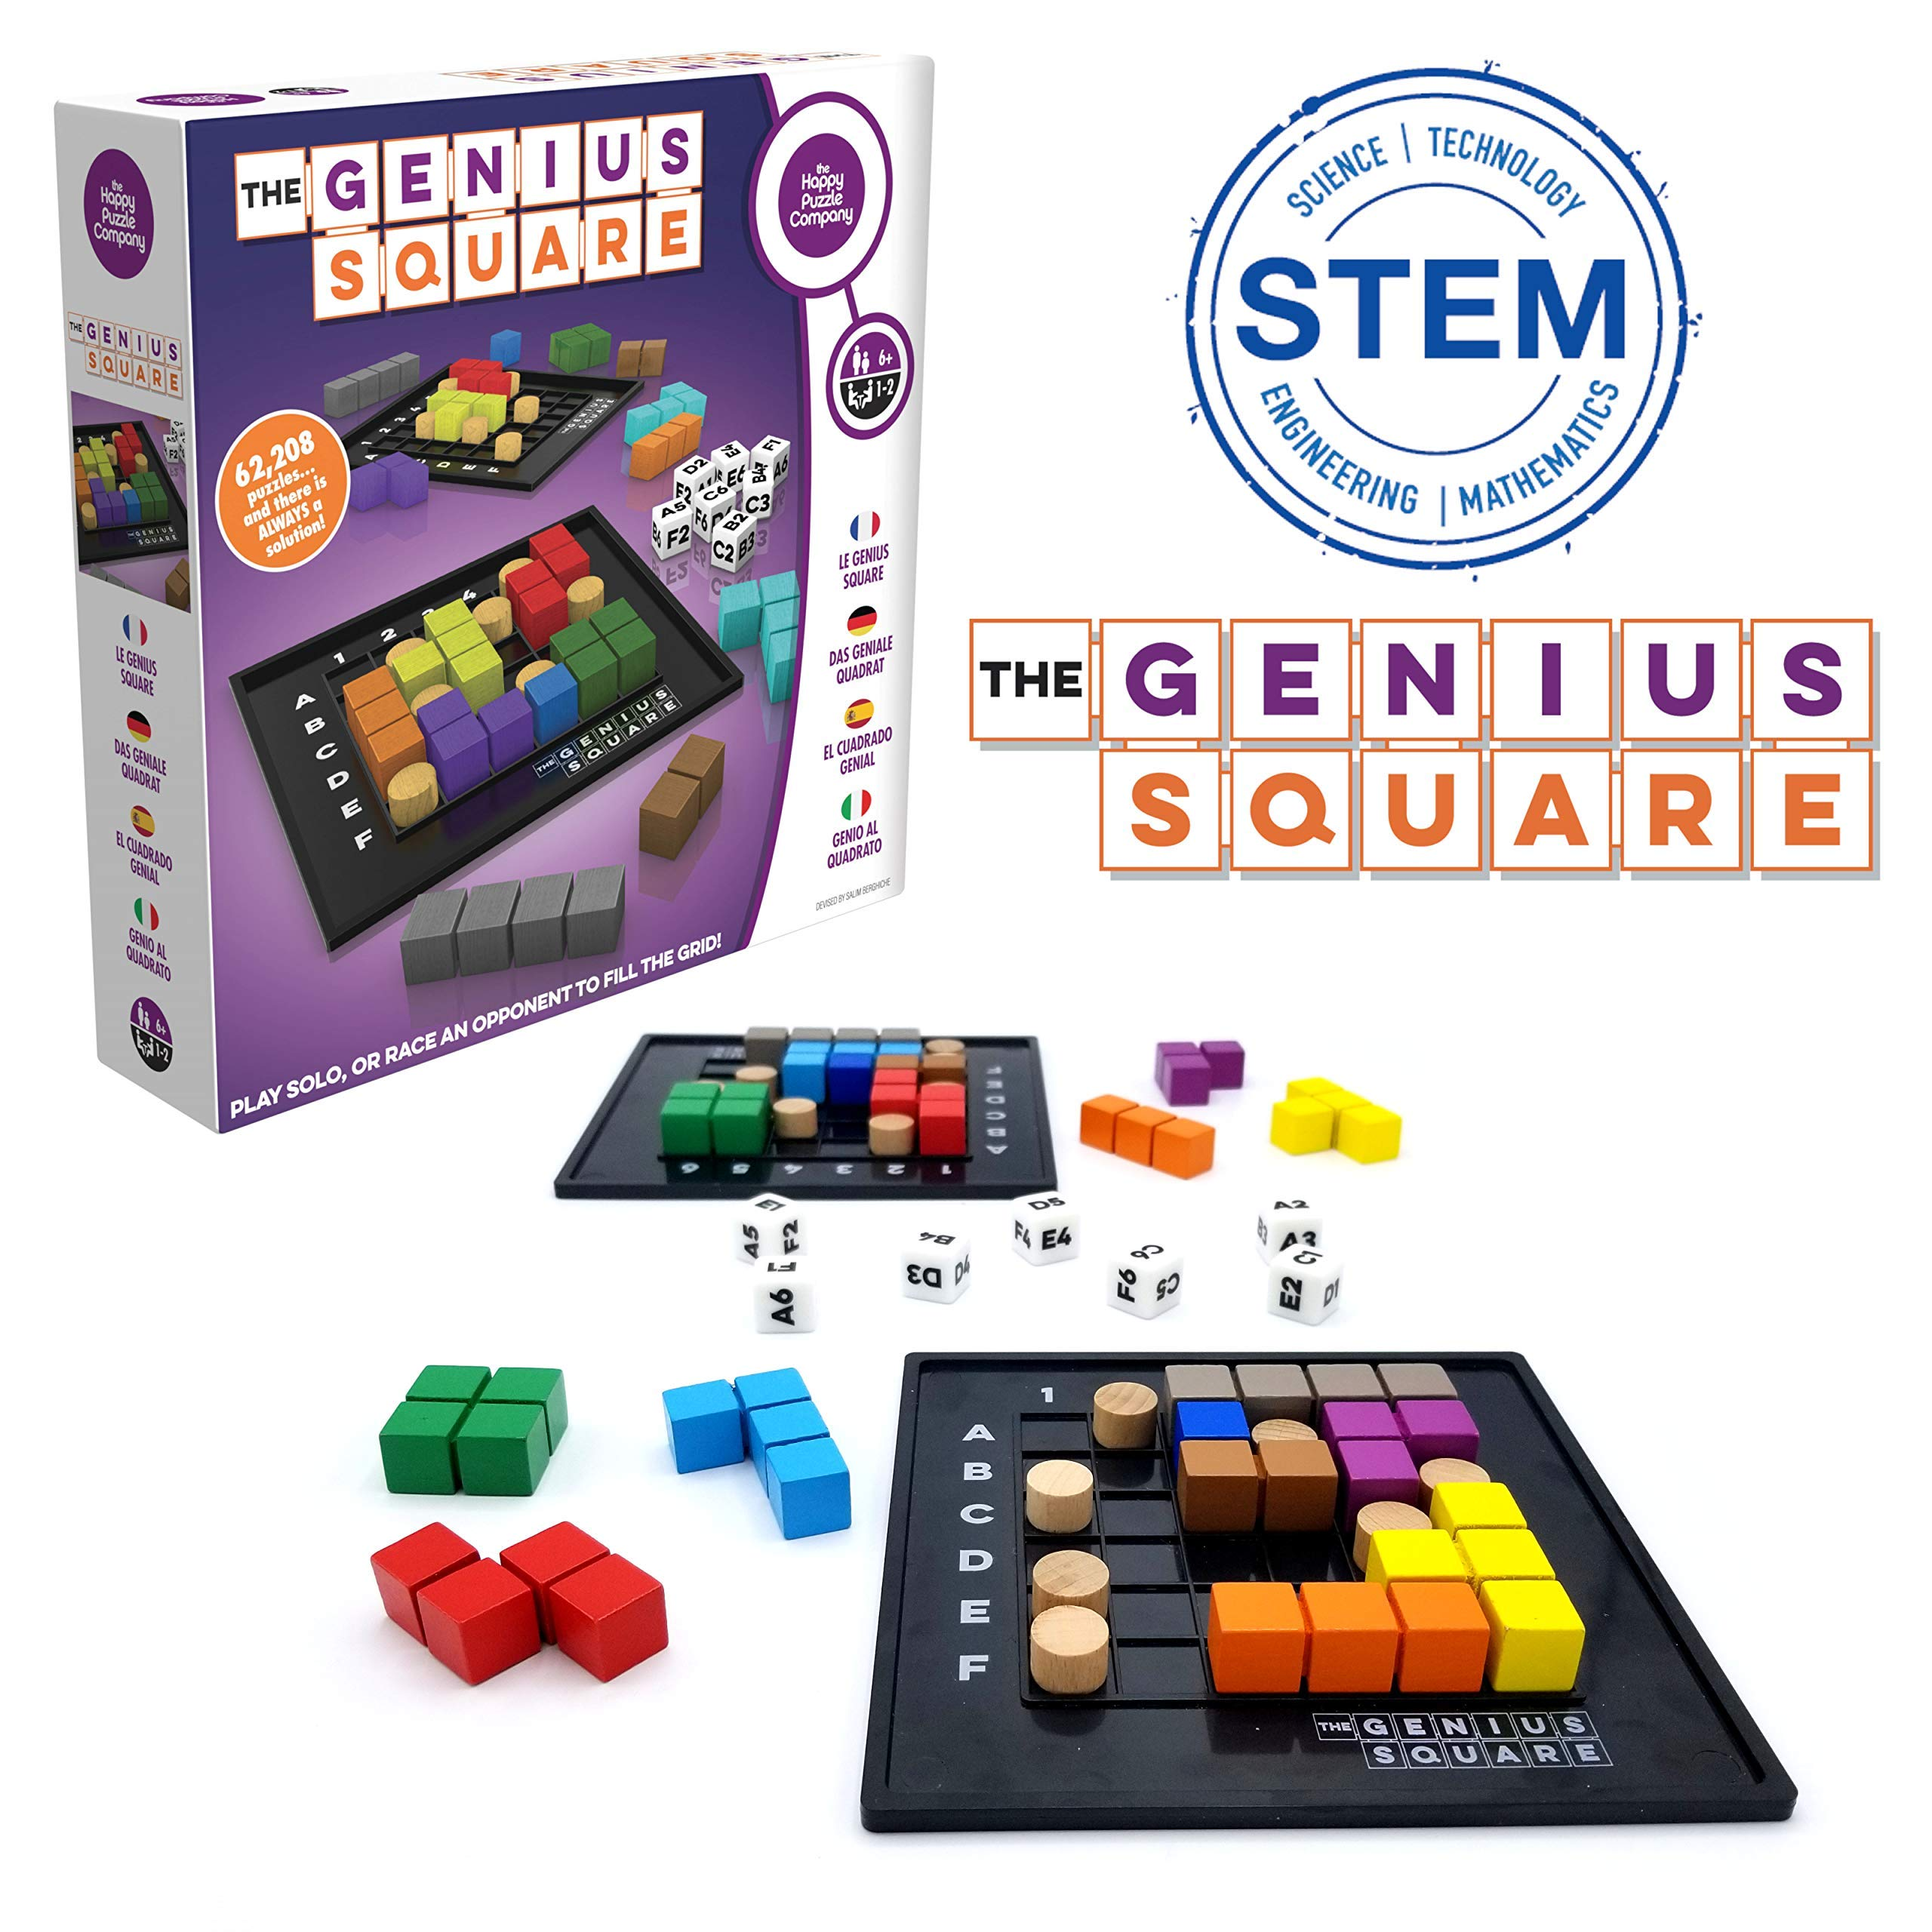 The Genius Square – Game of the Year Nominee! 60000+ Solutions STEM Puzzle Game! Roll the Dice & Race Your Opponent to Fill The Grid by Using Different Shapes! Promotes Problem Solving Training